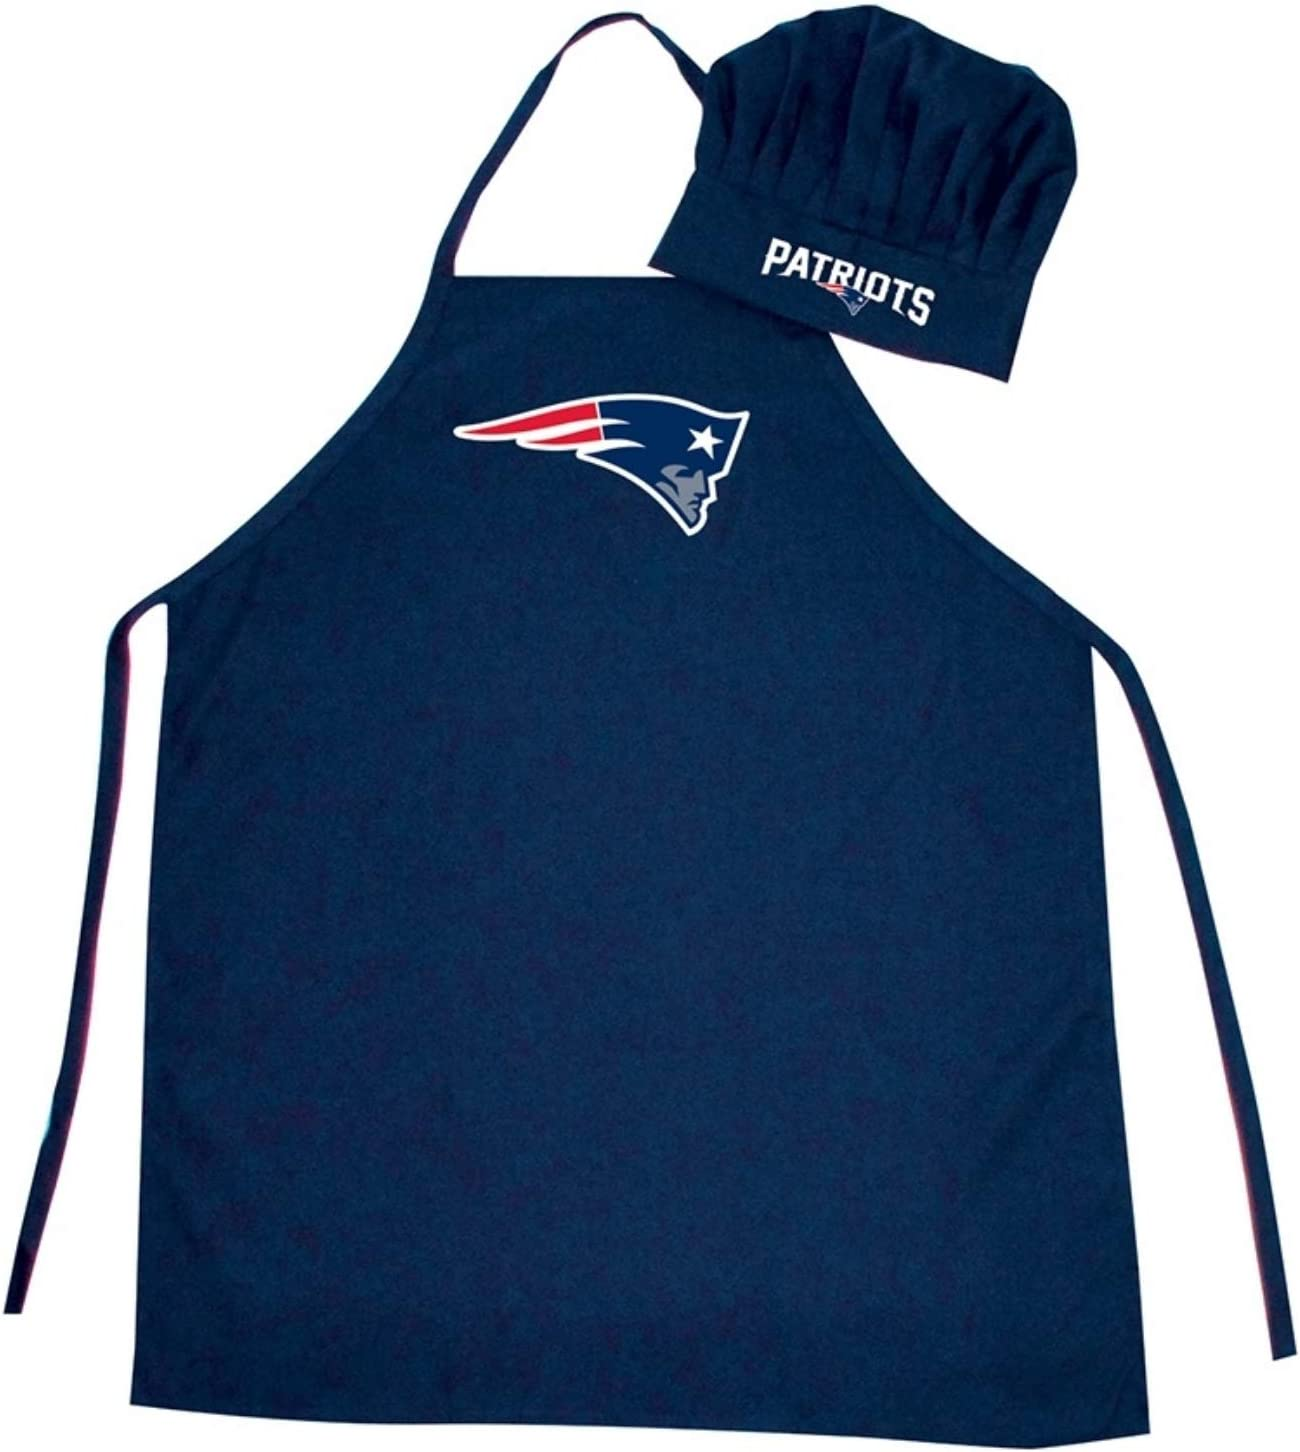 Pro Specialties Group Barbeque Apron and Chef's Hat - New England Patriots - NFL